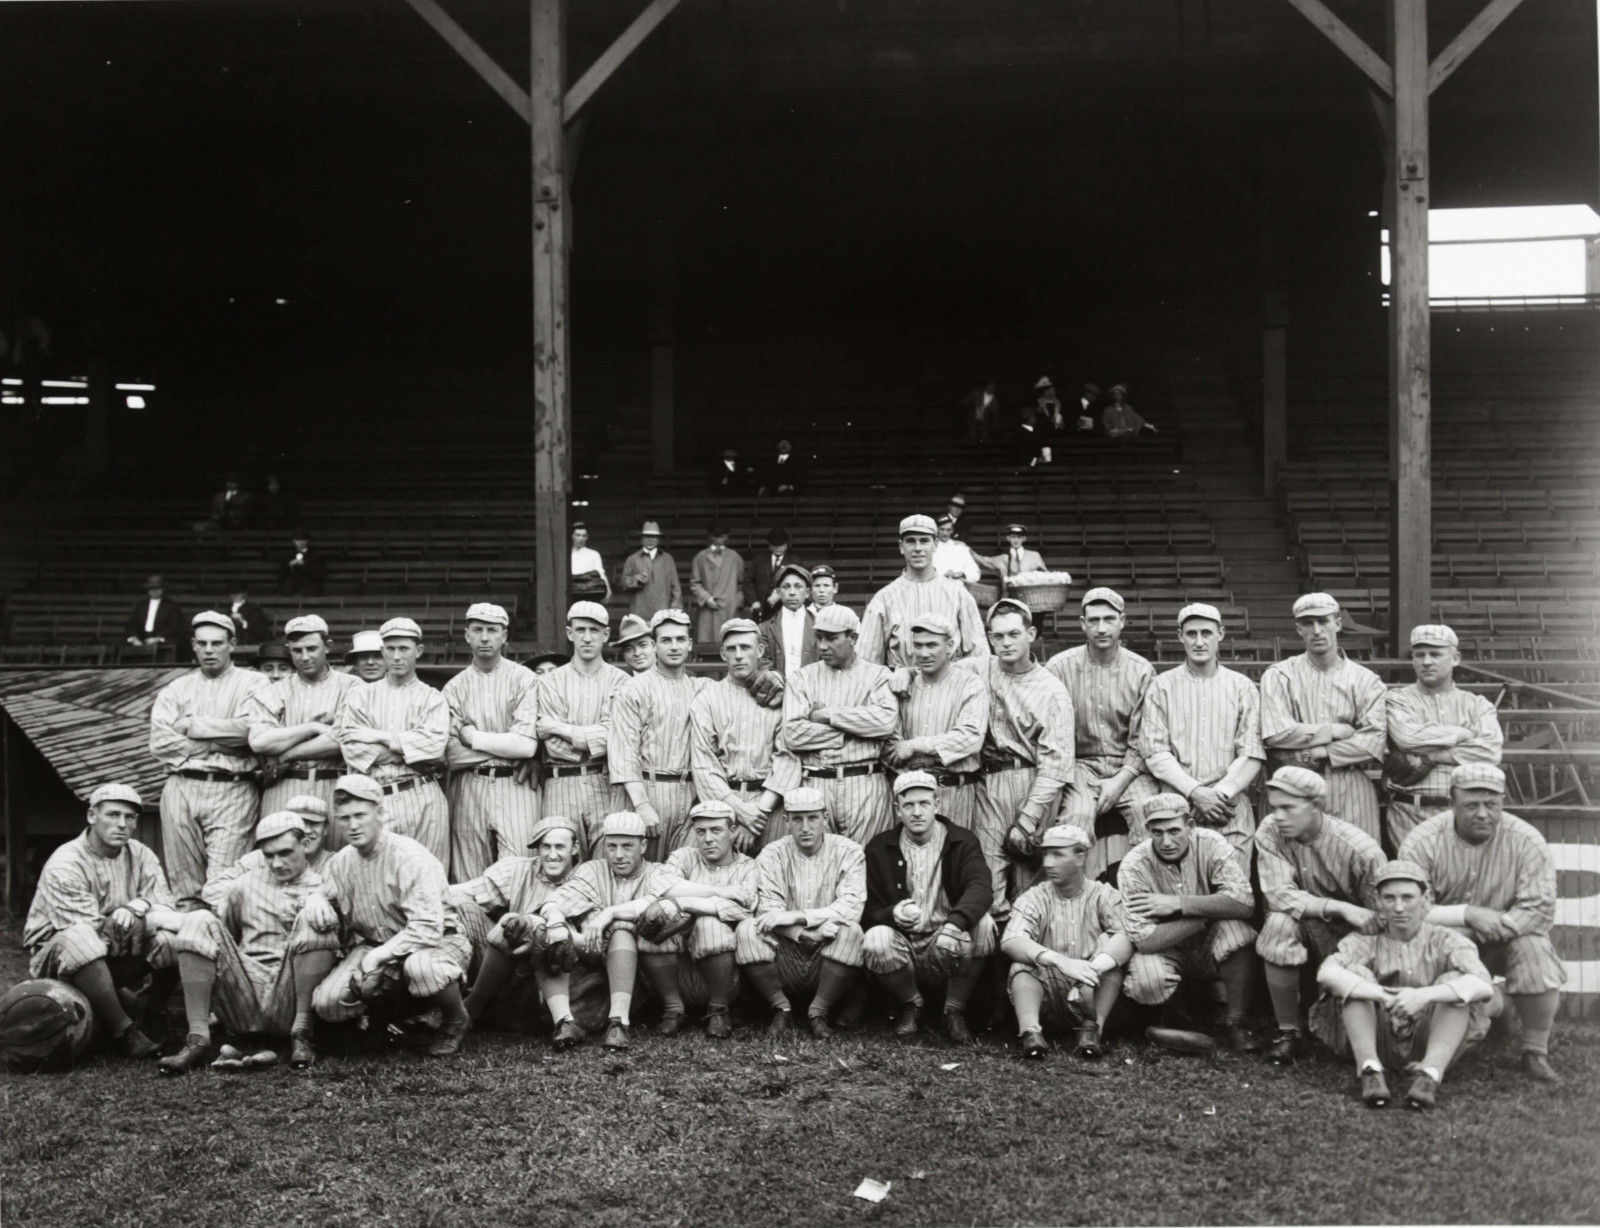 1915 NEW YORK GIANTS NY 8X10 TEAM PHOTO BASEBALL PICTURE MLB image 1